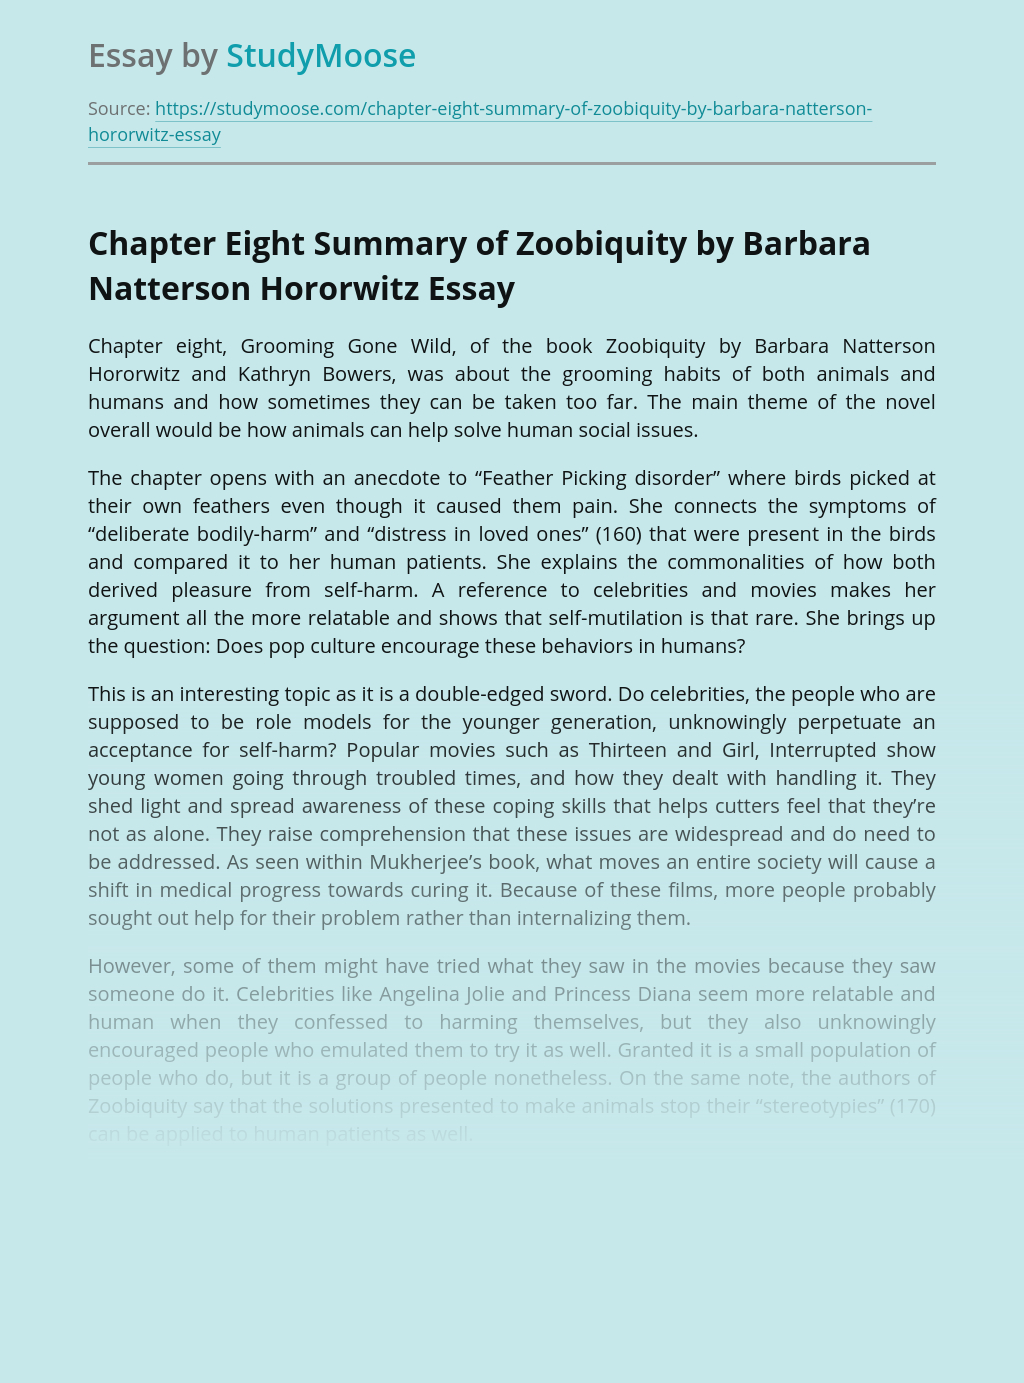 Chapter Eight Summary of Zoobiquity by Barbara Natterson Hororwitz